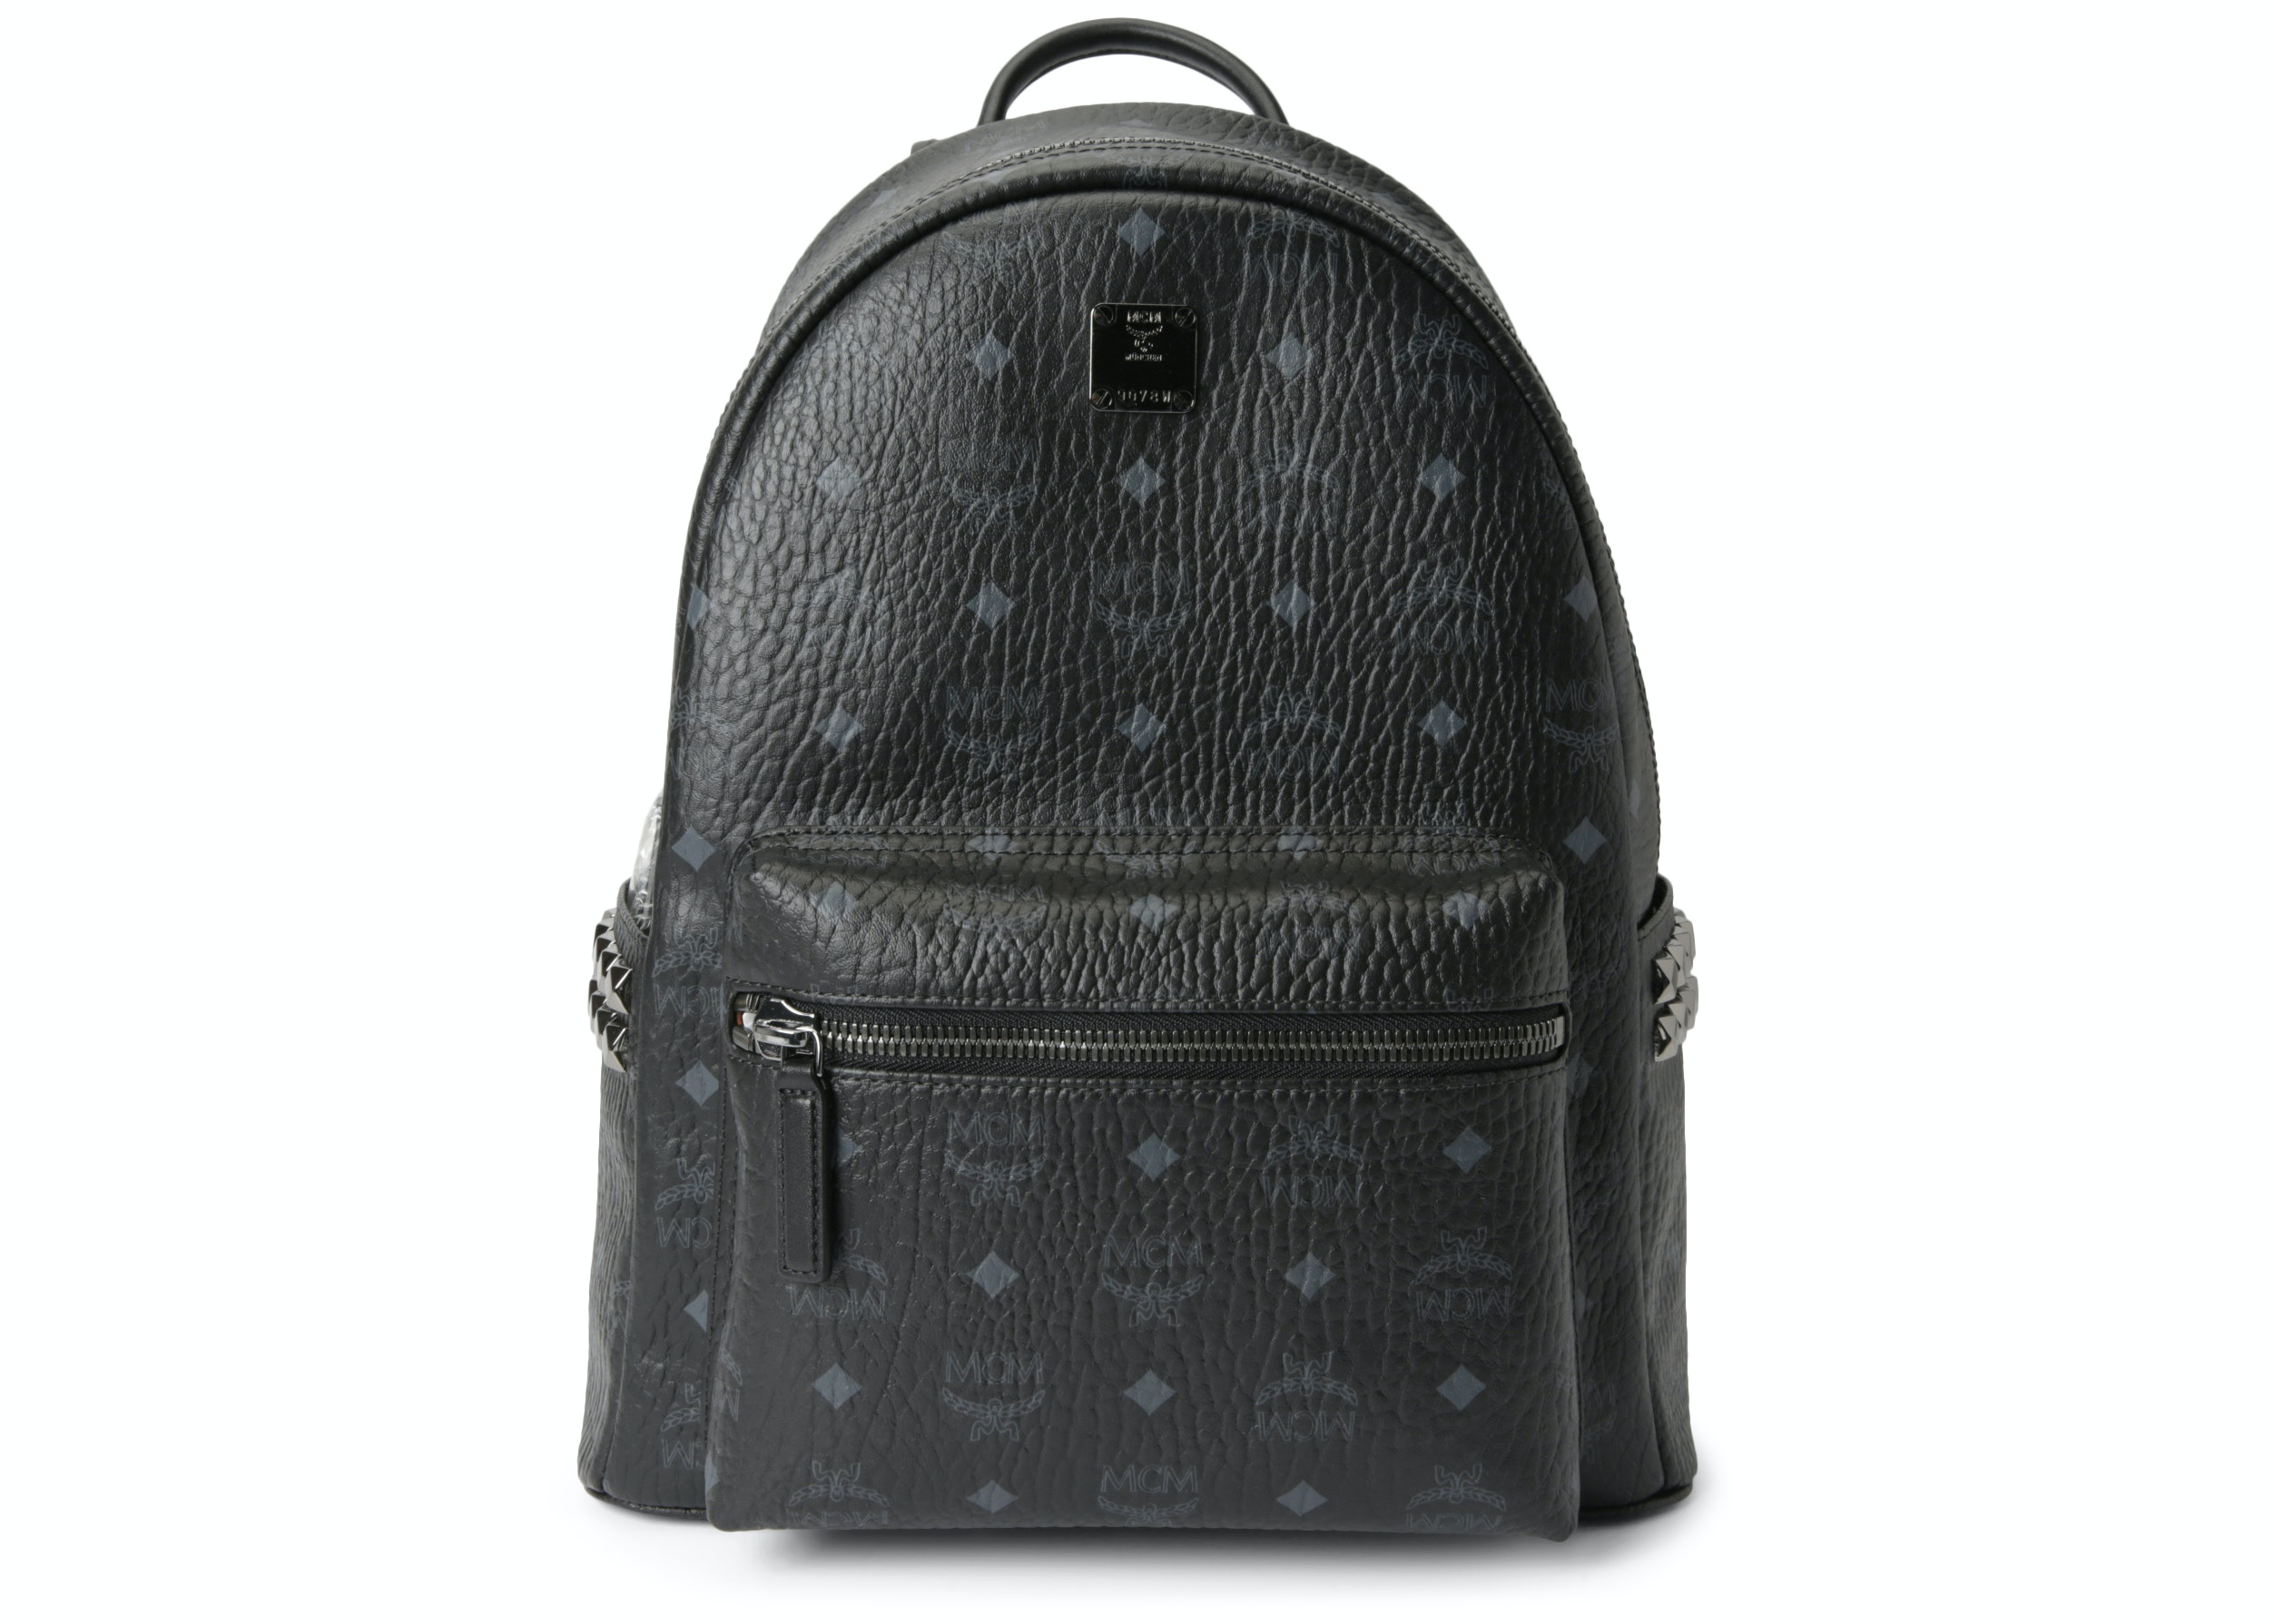 MCM Stark Backpack Visetos Side Studs Small/Medium Black